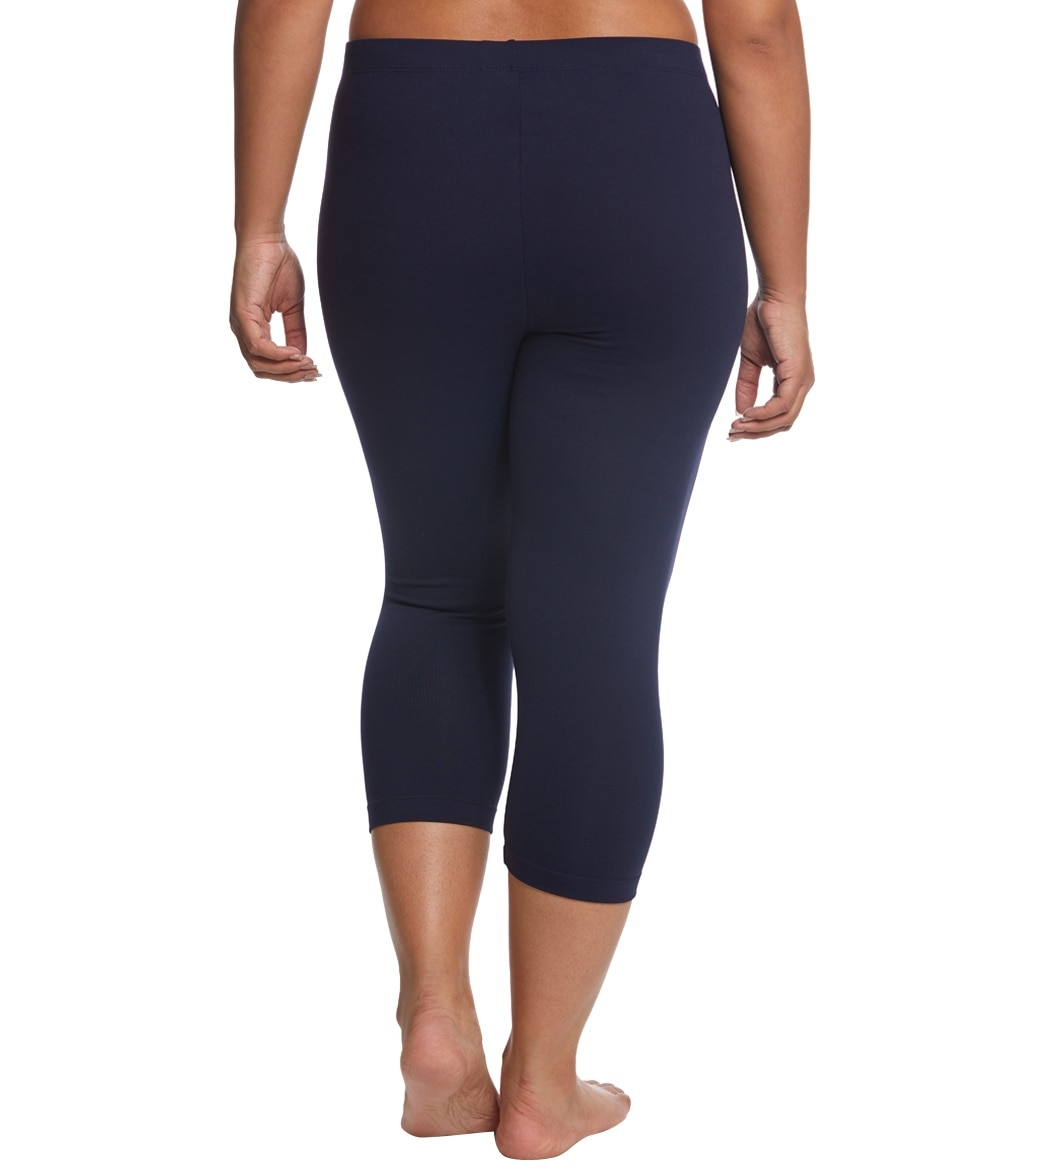 141600b9df471 Danskin Plus Size Body Fit Yoga Capris at YogaOutlet.com